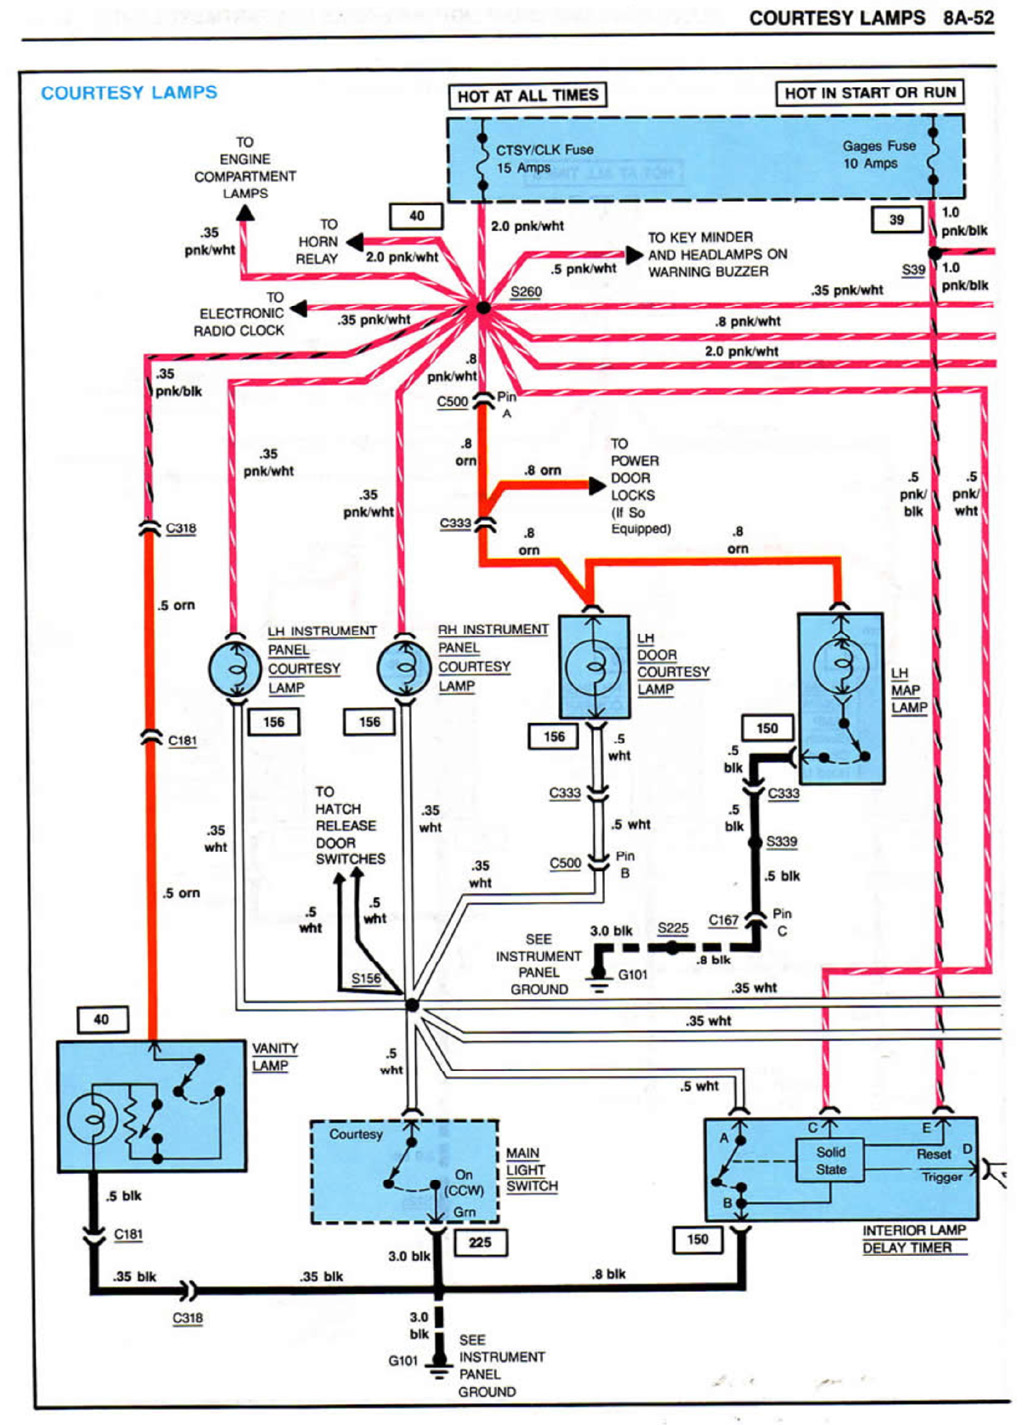 1984_Corvette_Courtesy_Lamps1 2001 corvette wiring diagram c5 corvette stereo wiring diagram c6 corvette radio wiring harness at fashall.co